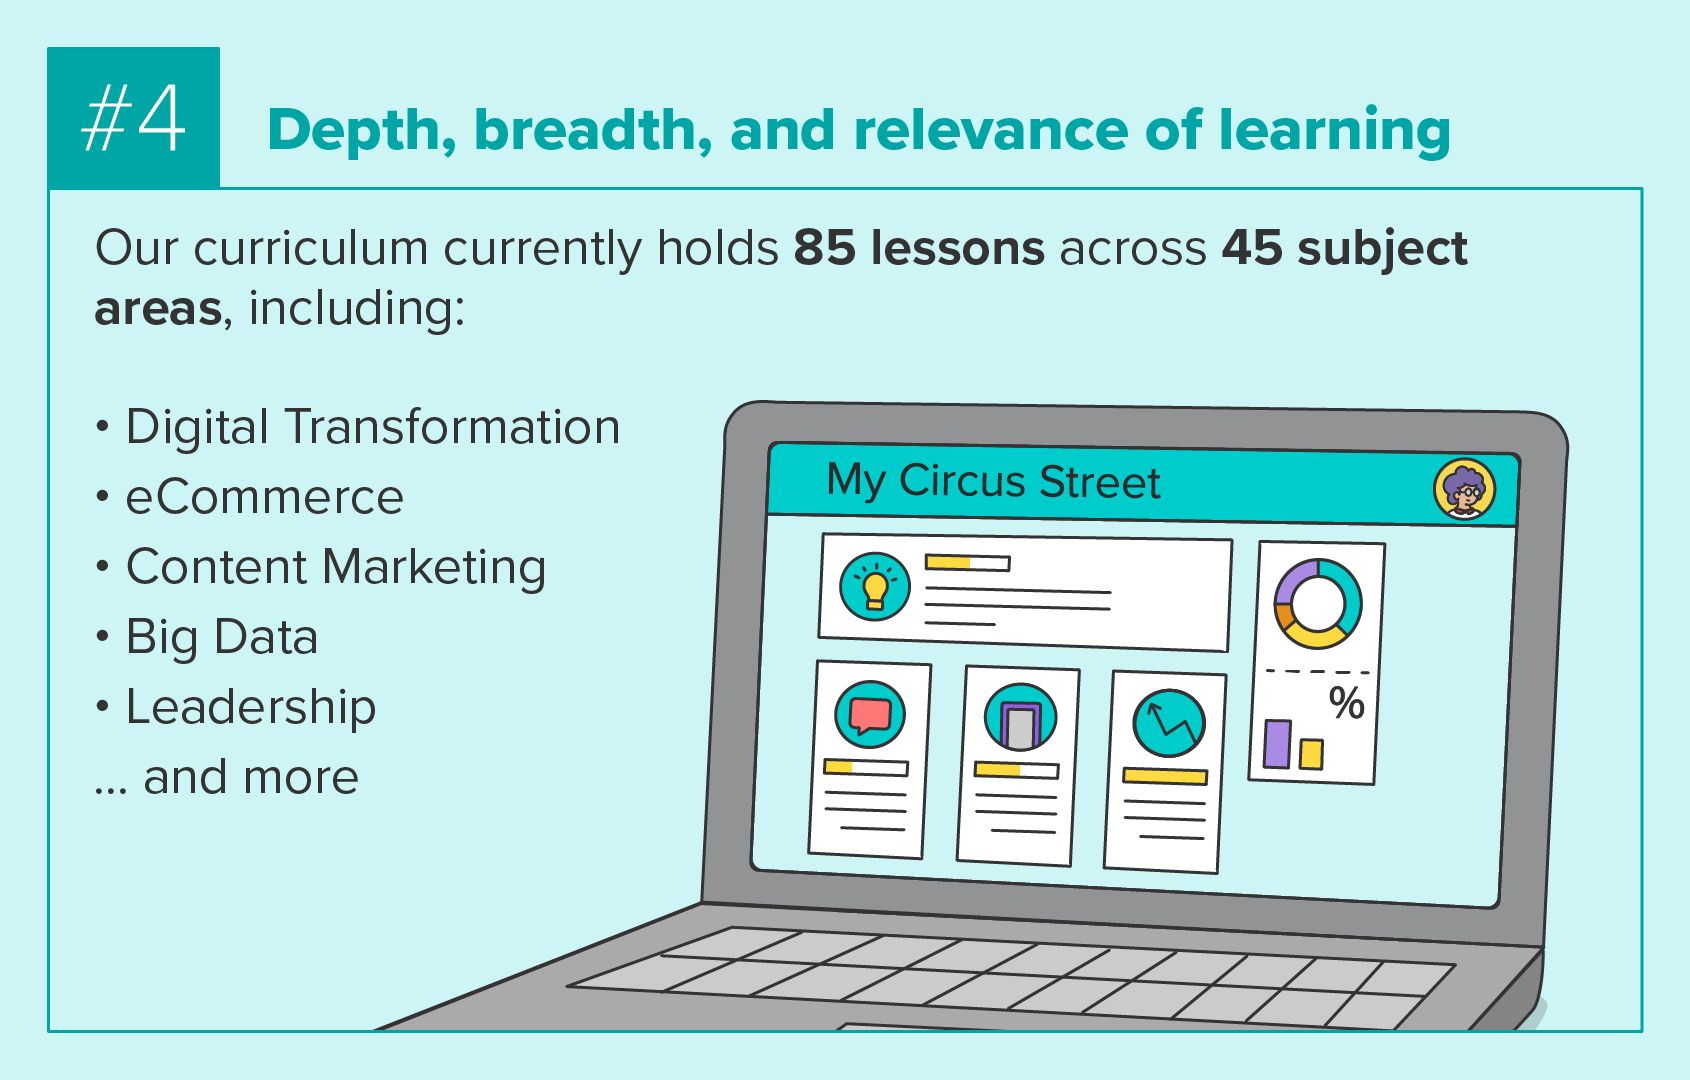 Depth, breadth and relevance of learning